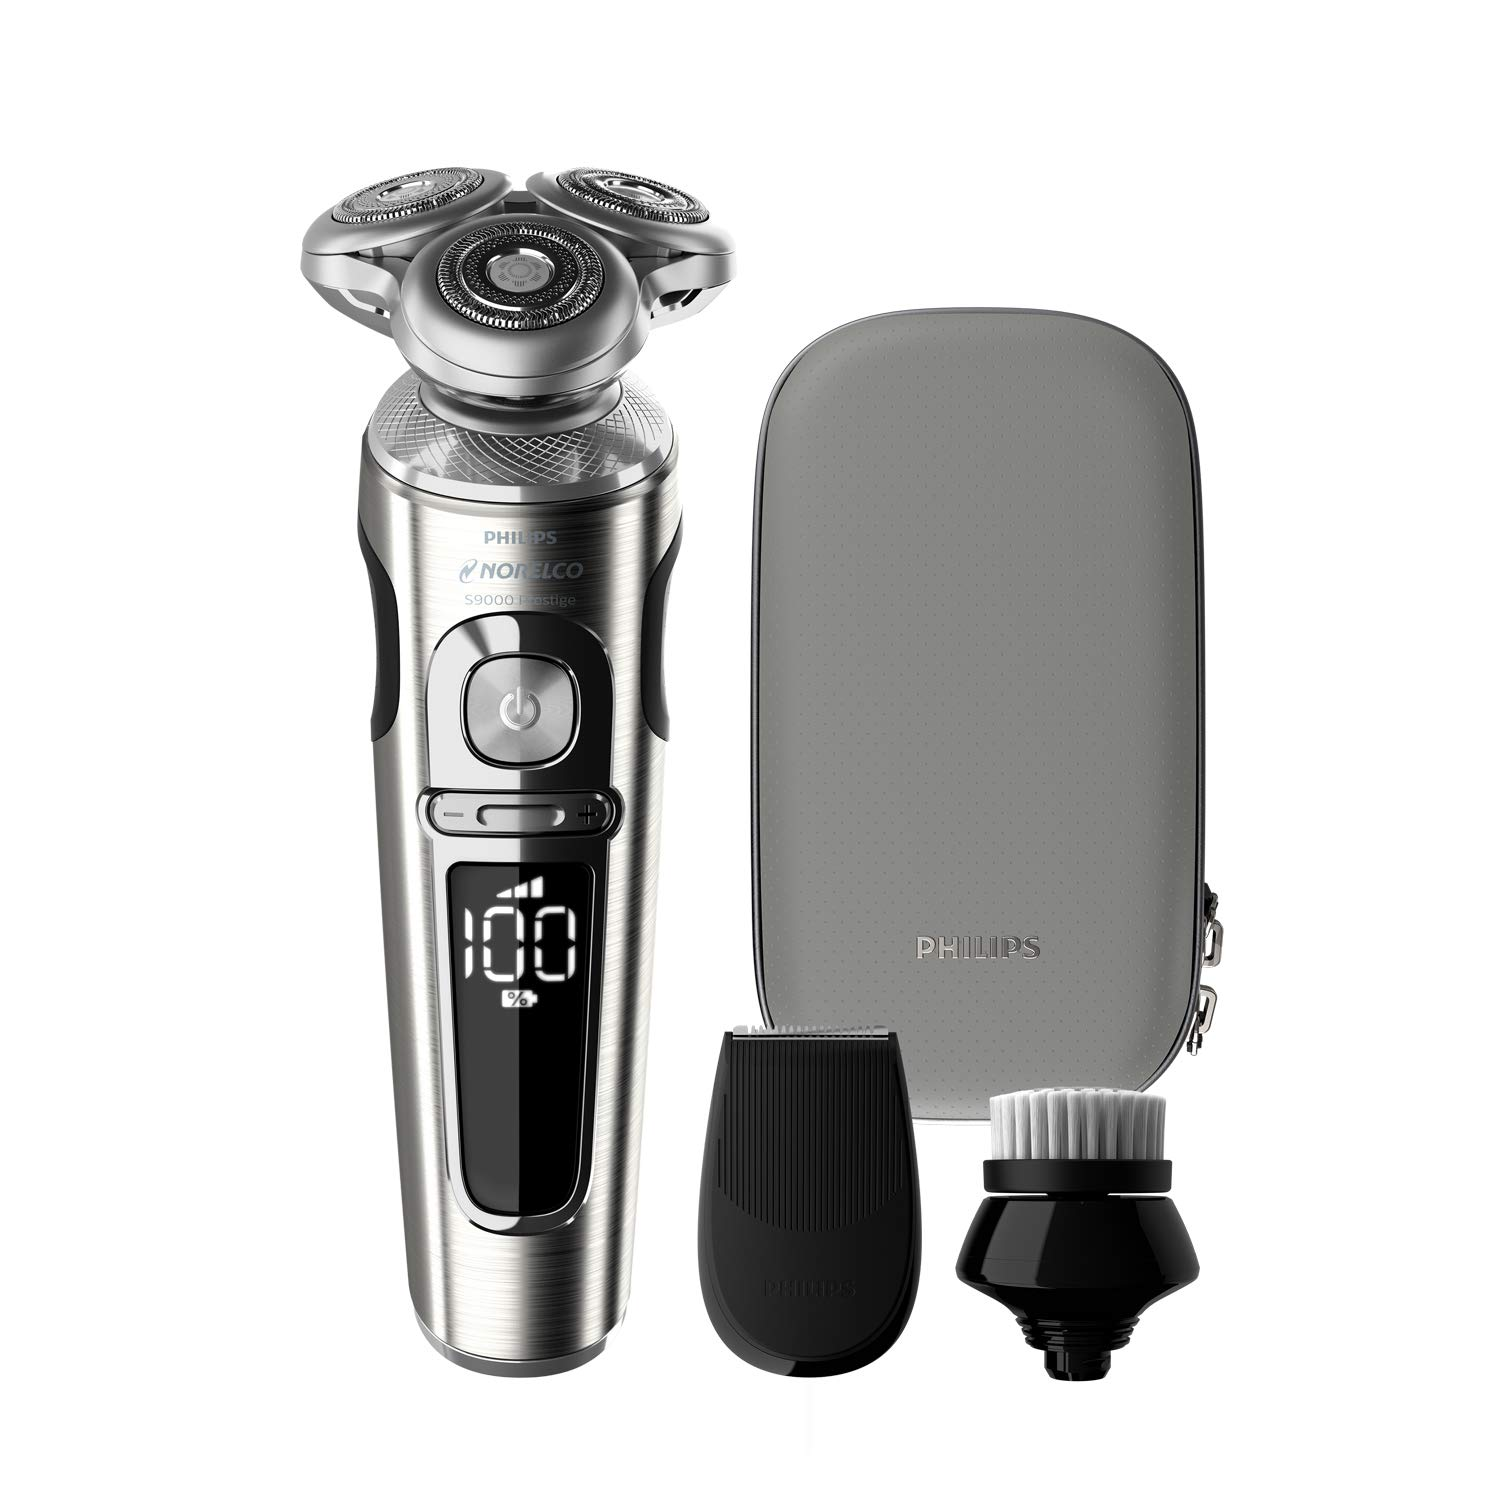 Philips Norelco 9000 Prestige Electric Shaver with Precision Trimmer, Cleansing Brush and Premium Case, SP9820/88